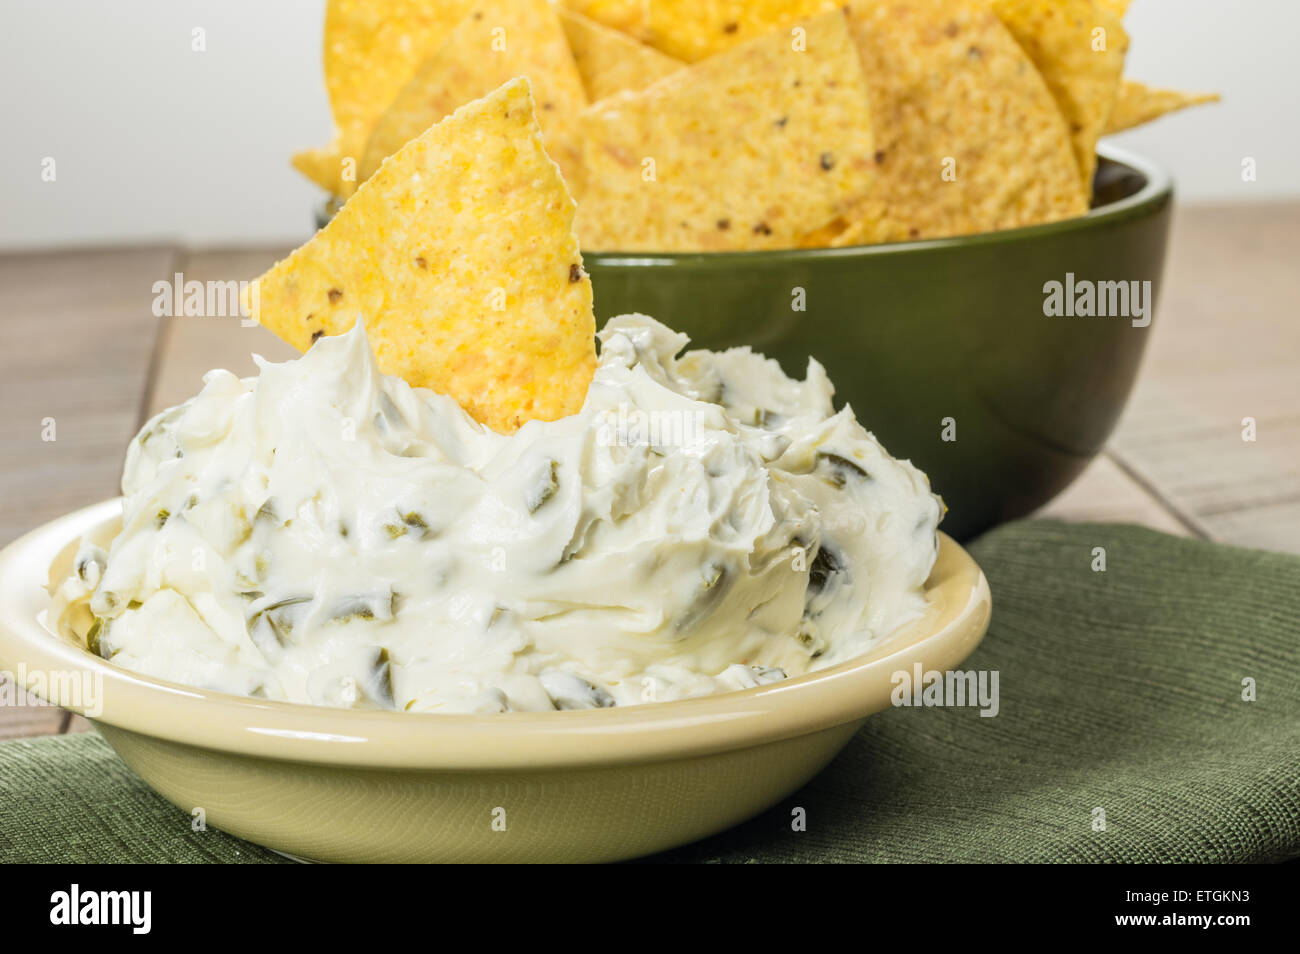 Nacho corn chips with hot pepper cream cheese dip - Stock Image